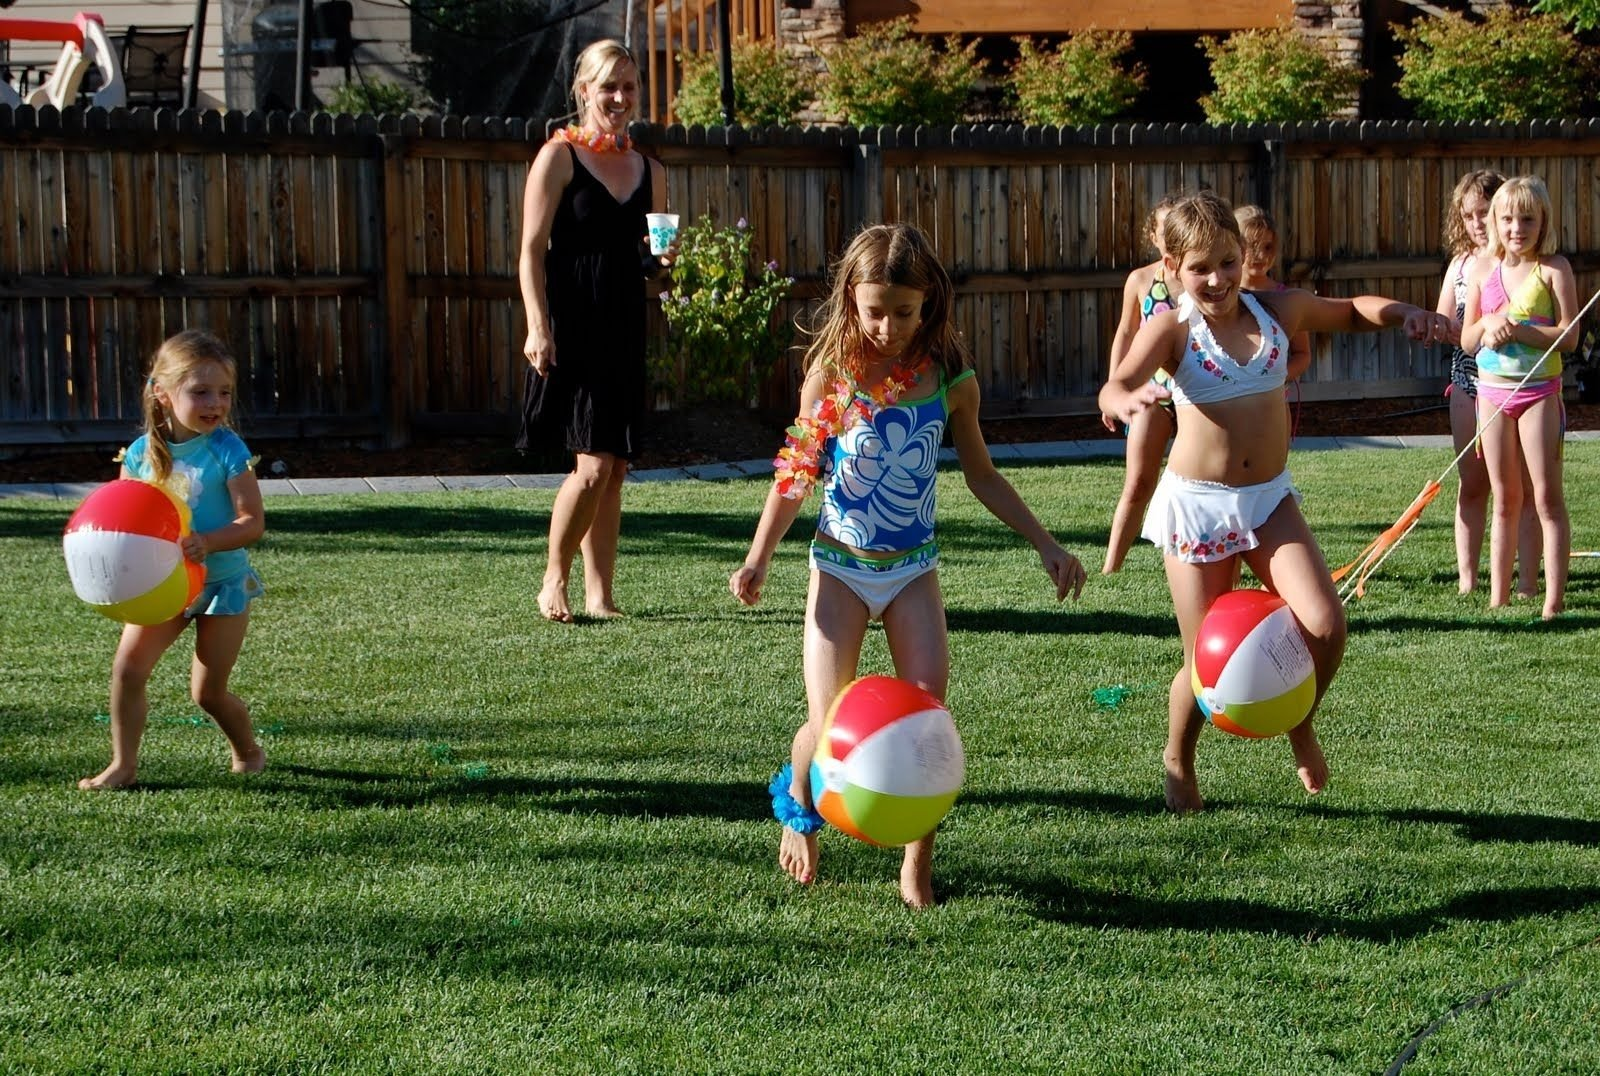 10 Awesome Relay Race Ideas For Adults beach ball relay games beach ball relay race they had to run 1 2020